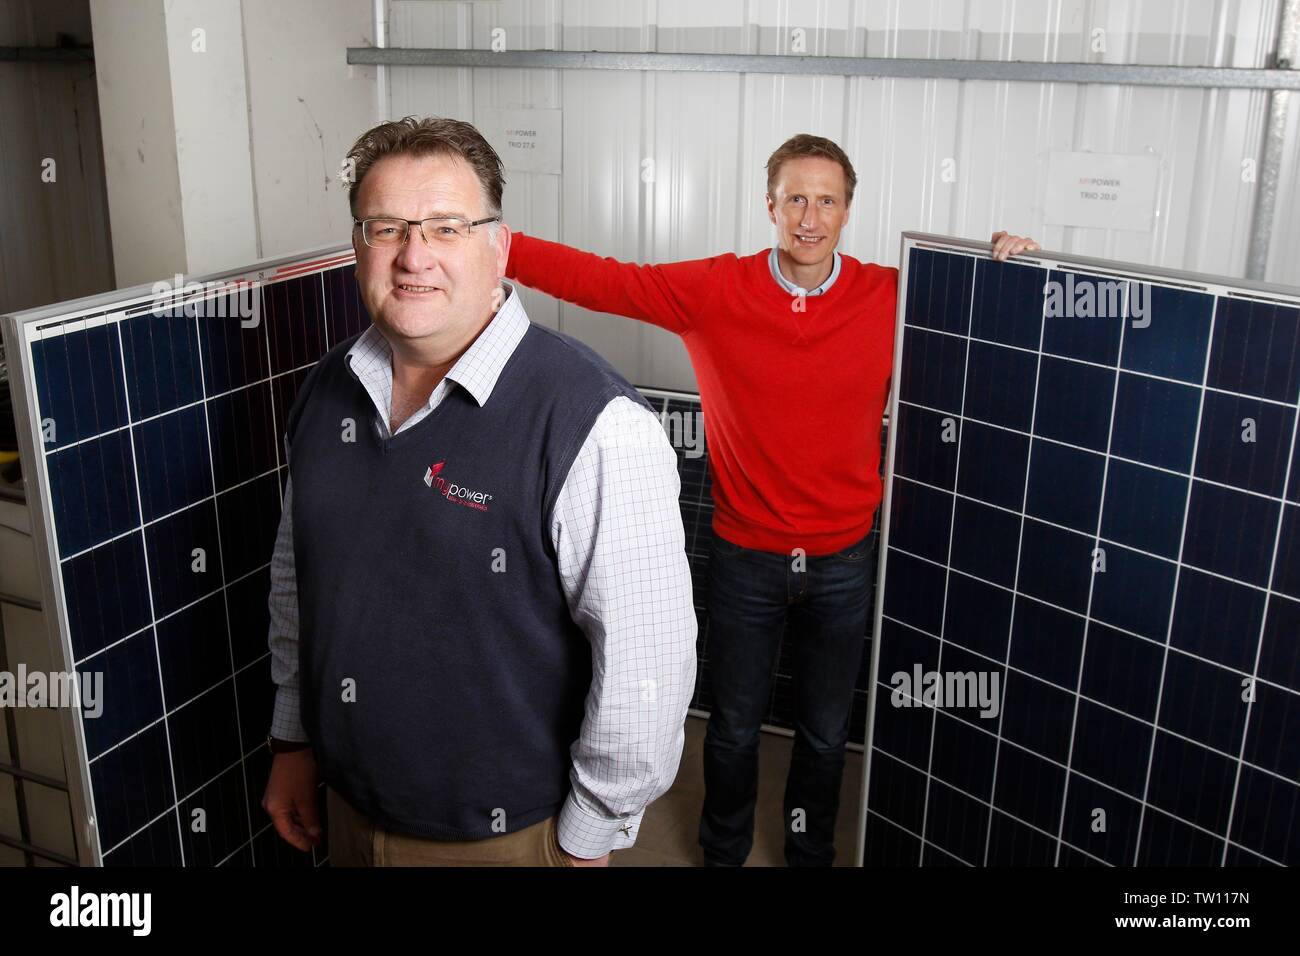 Ben Harrison, managing partner of mypower, with Neil Stott, business development manager, and two full sized solar panels, at the solar panel installa - Stock Image